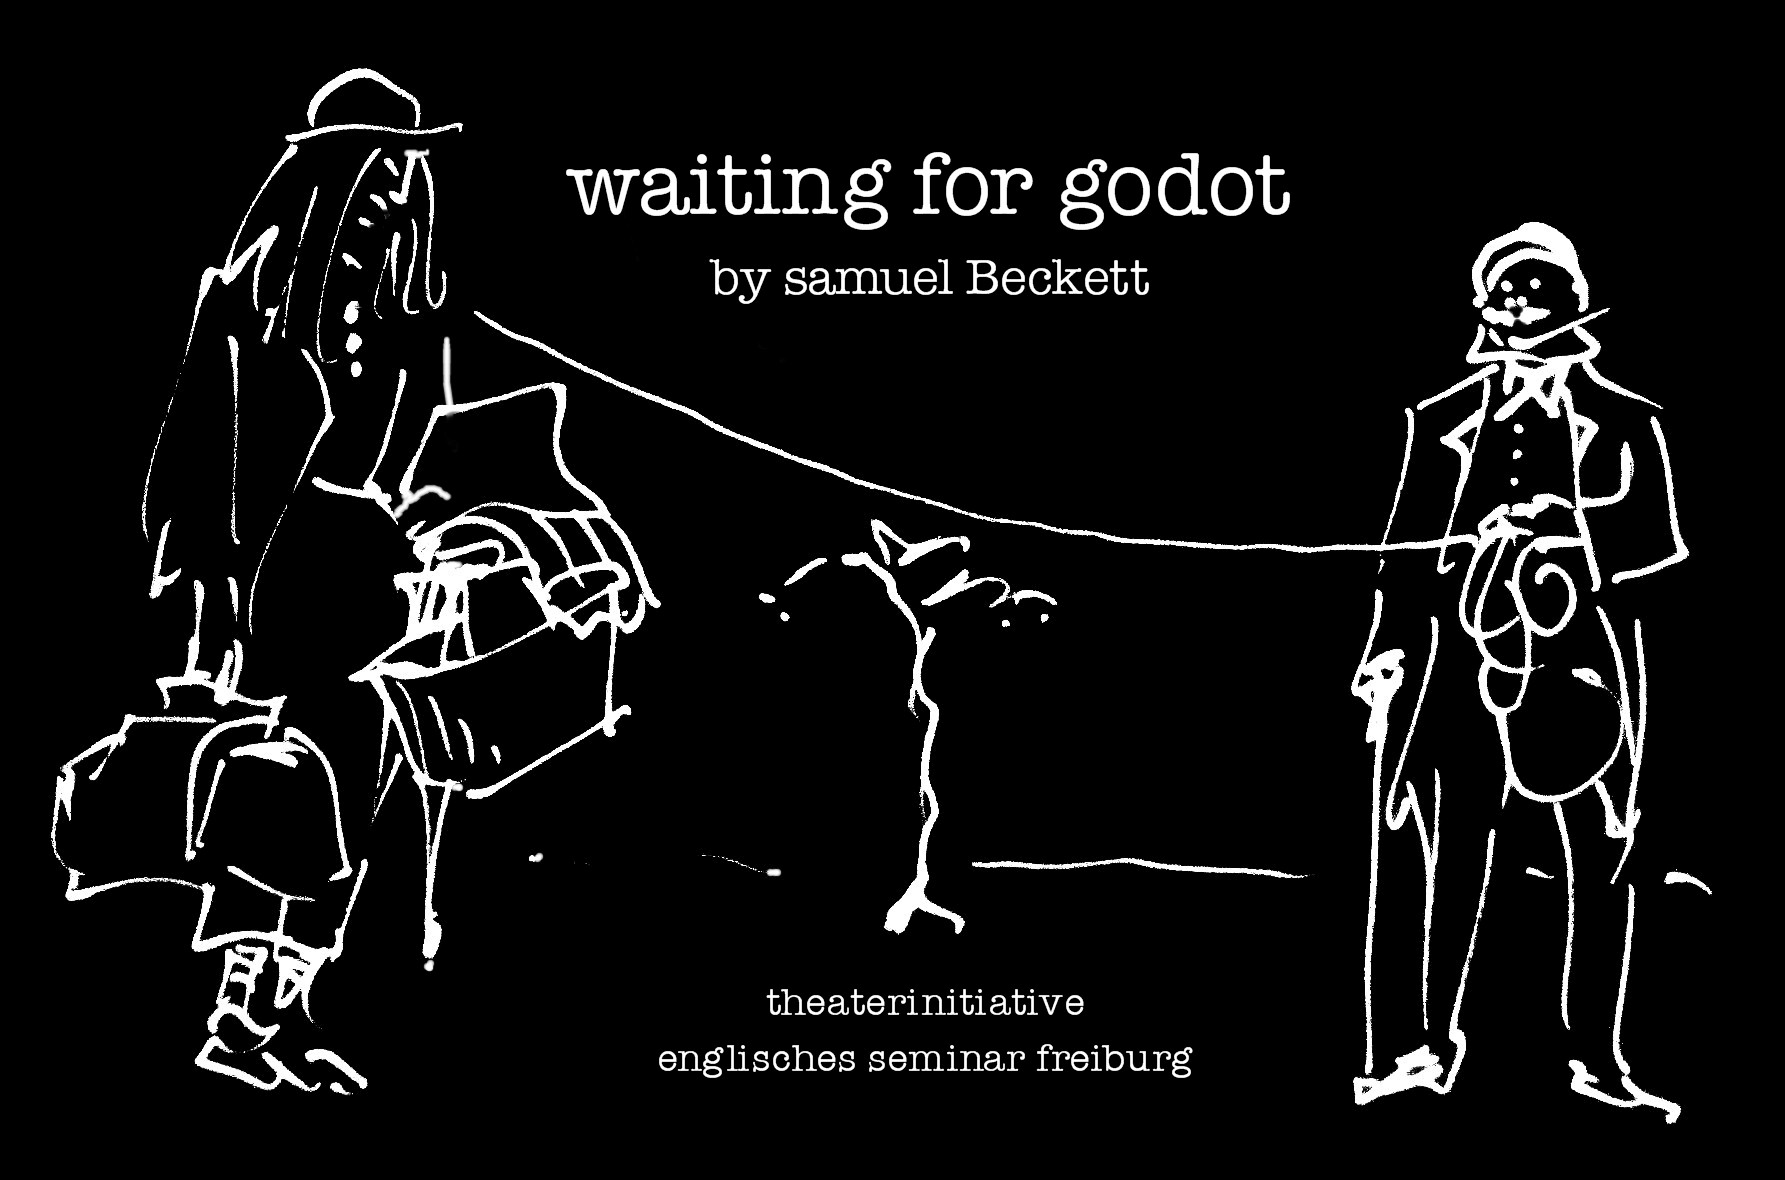 waiting for godot essays religion Waiting for godot this essay waiting for godot and other 63,000+ term papers, college essay examples and free essays are available now on reviewessayscom.